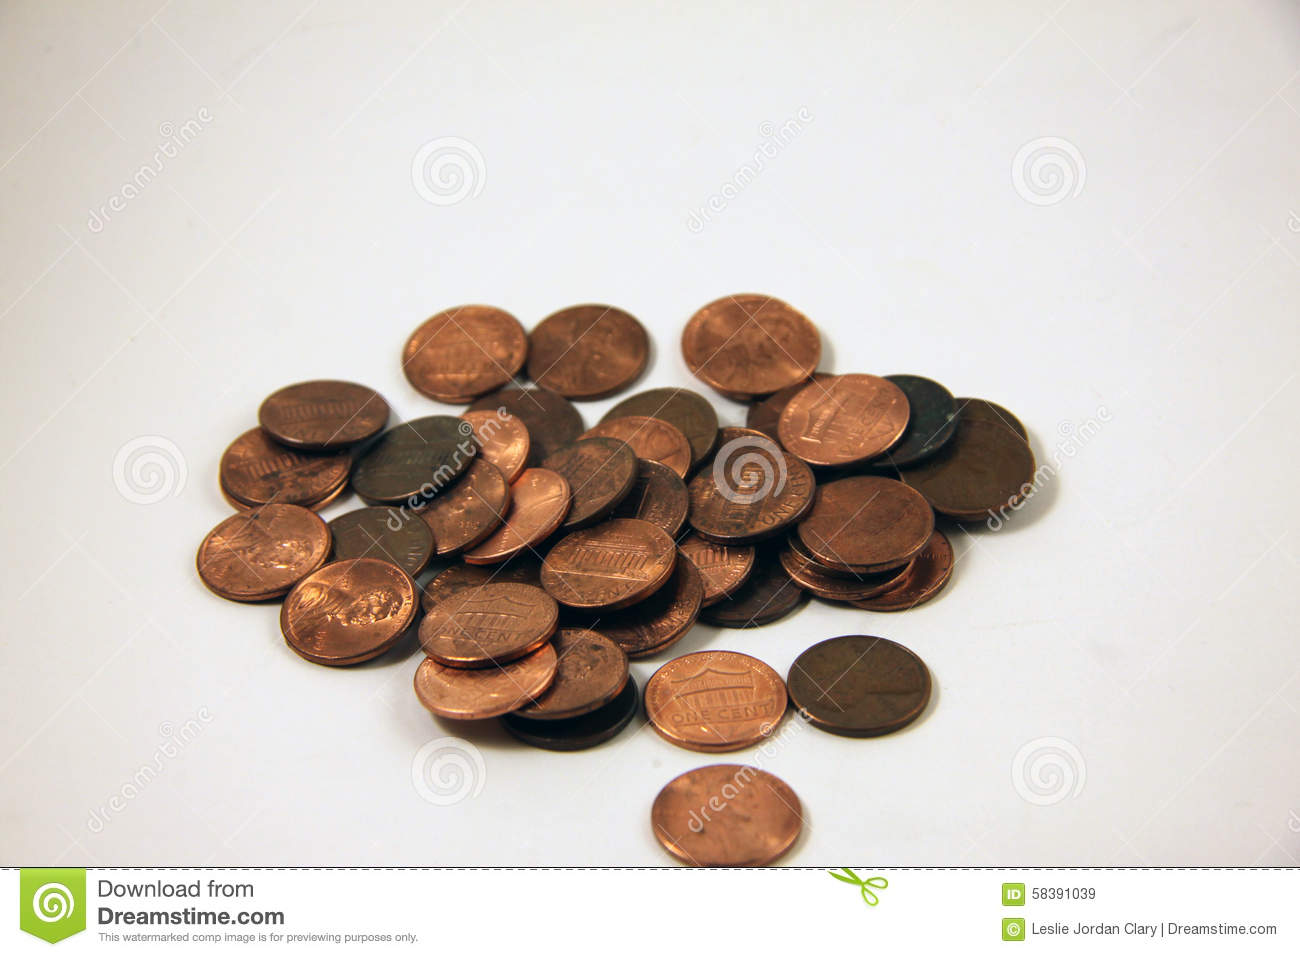 A pile of copper pennies